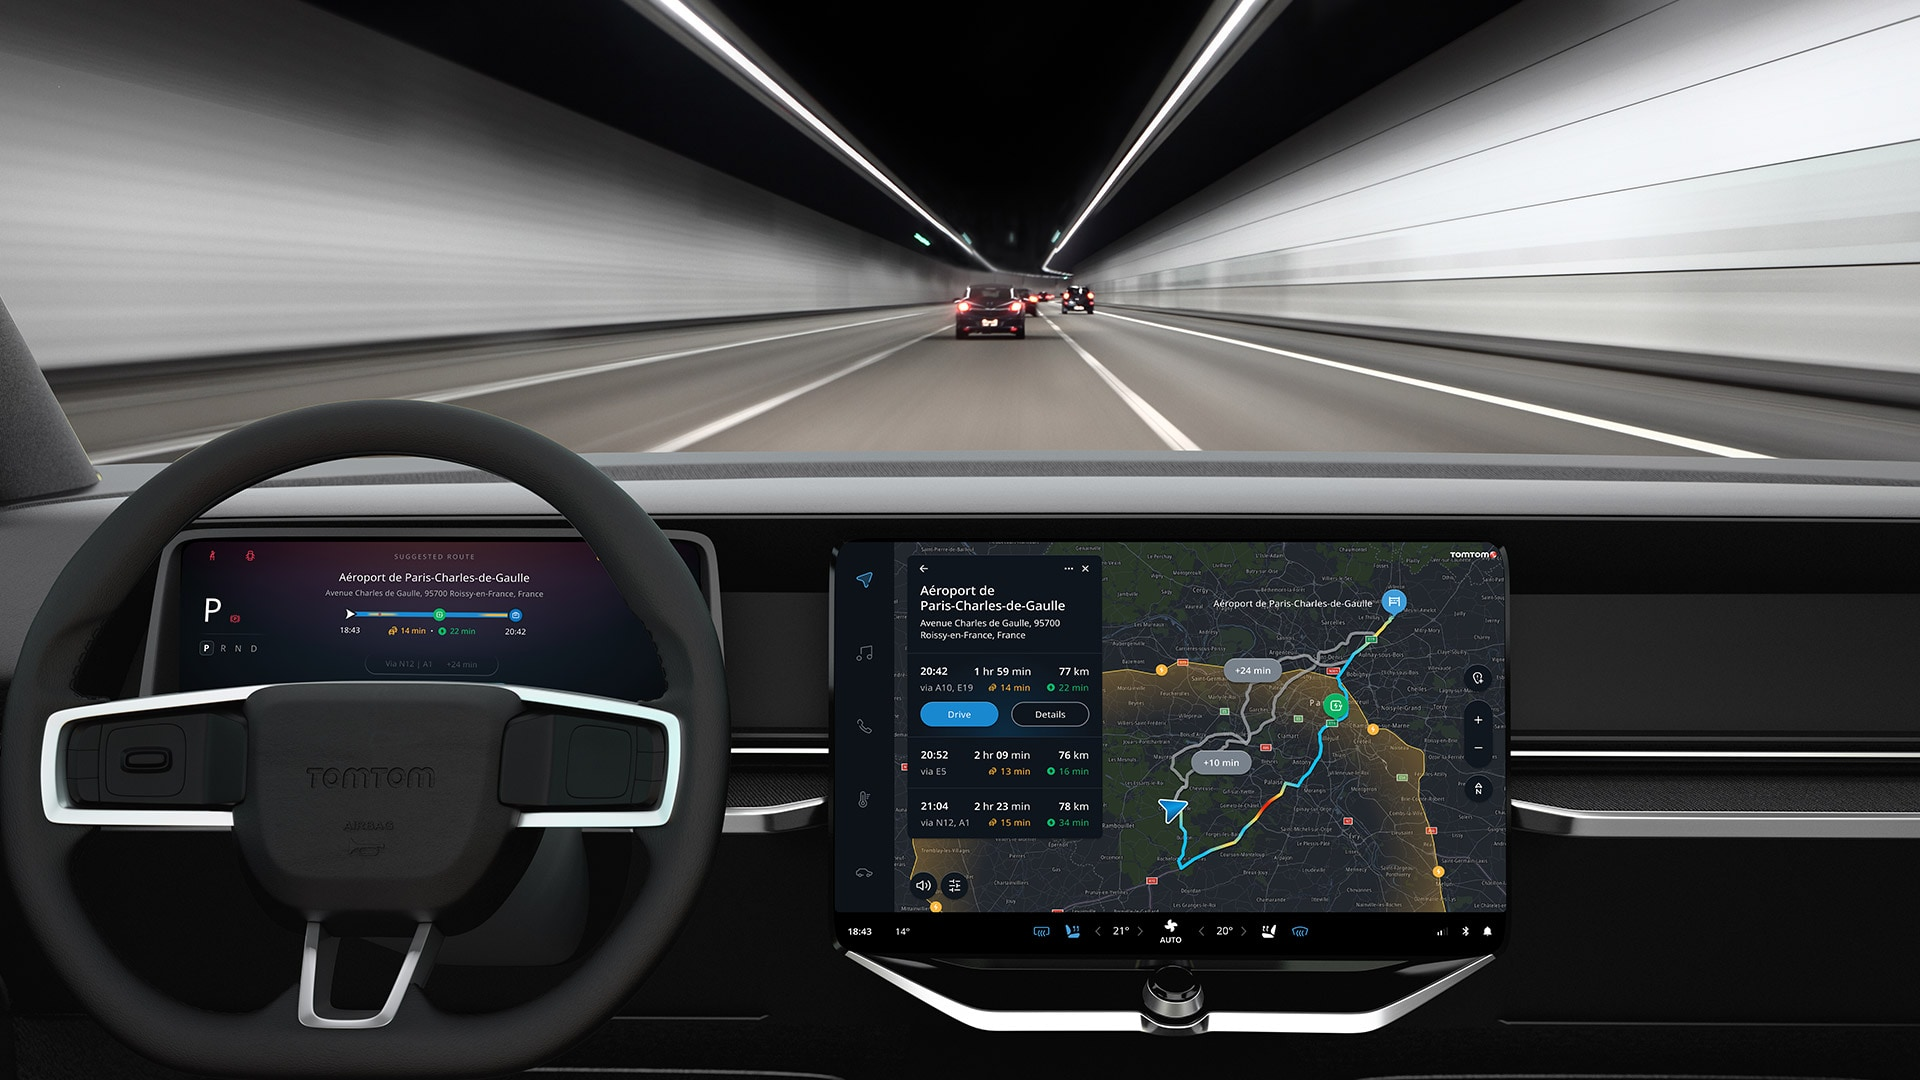 TomTom is driving the EV revolution with Hubject and Eco-Movement